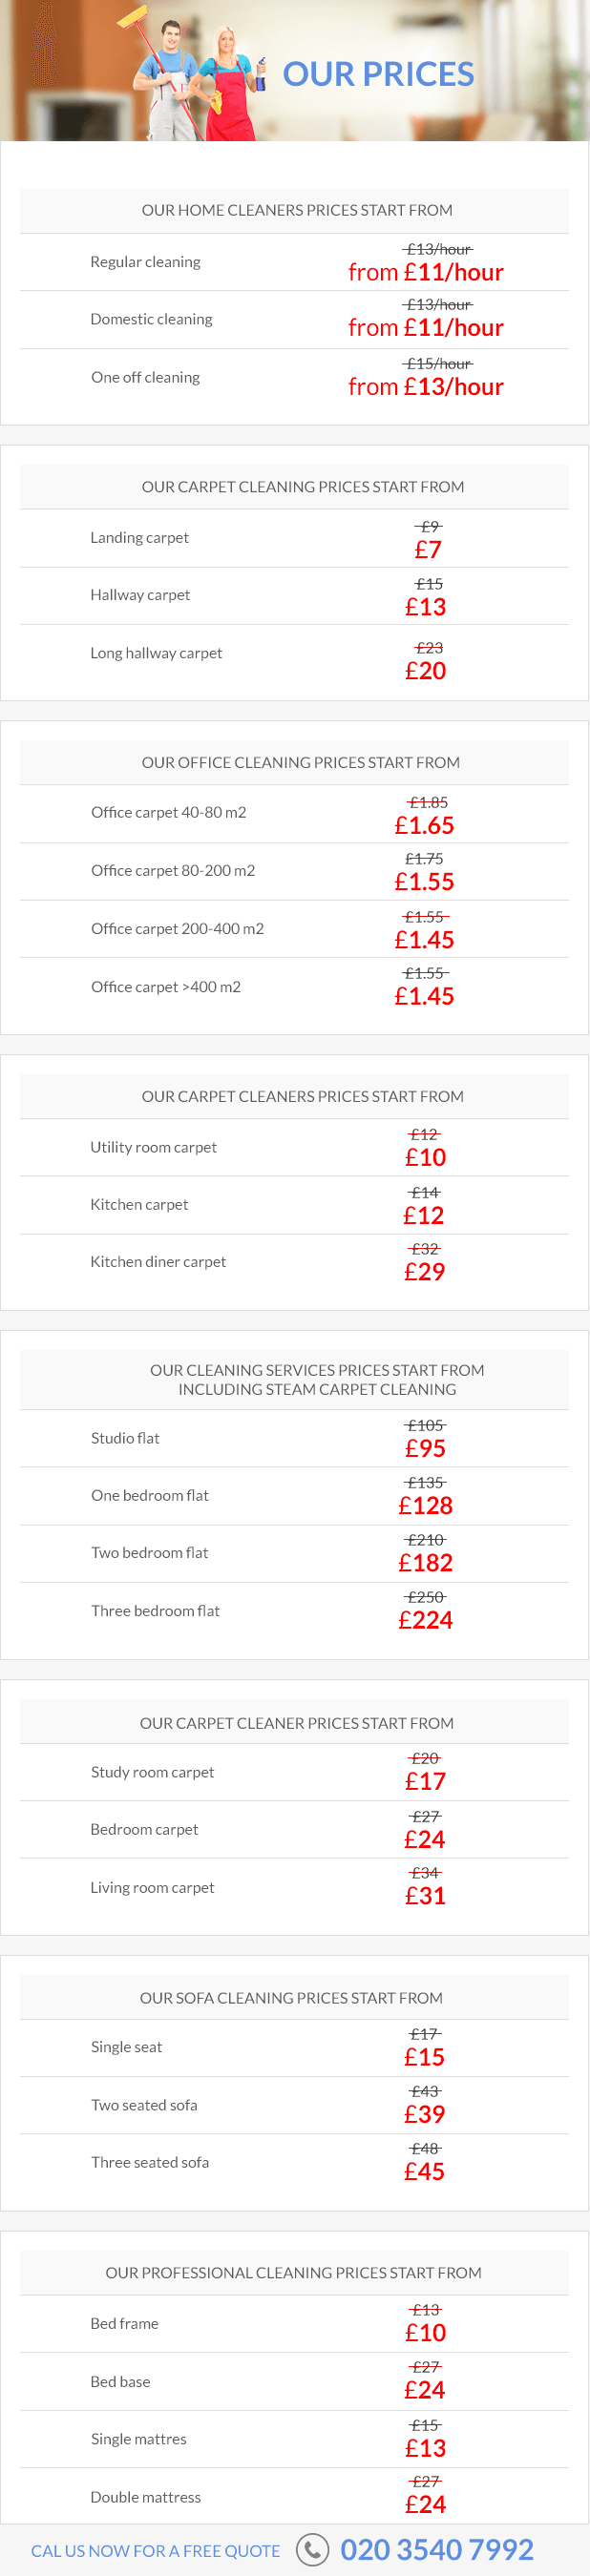 Competitively priced cleaning services in London